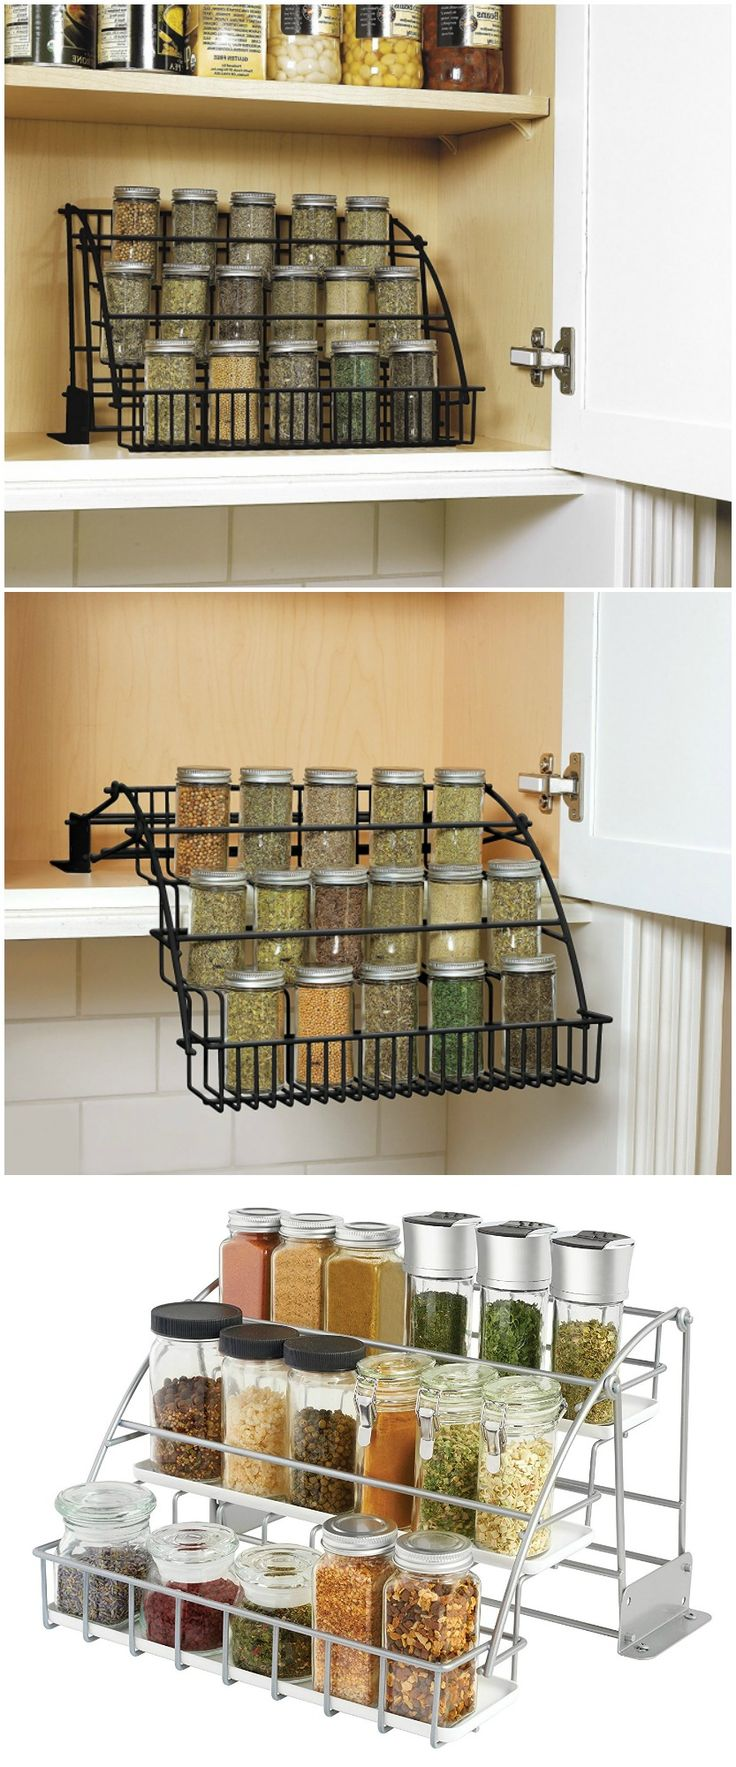 Spice Rack Ideas for Both Roomy or Cramped Kitchen and Other Rooms  Tags:   ikea spice rack  spice rack ideas  wall mounted spice rack  magnetic spice rack  spice rack ikea  wooden spice rack  spice rack with spices  wall spice rack  diy spice rack  spice rack walmart  pull out spice rack  over the door spice rack  hanging spice rack  spice rack organizer  amazon spice rack  kamenstein spice rack  rotating spice rack  door spice rack  pantry door spice rack  lazy susan spice rack  pull down…